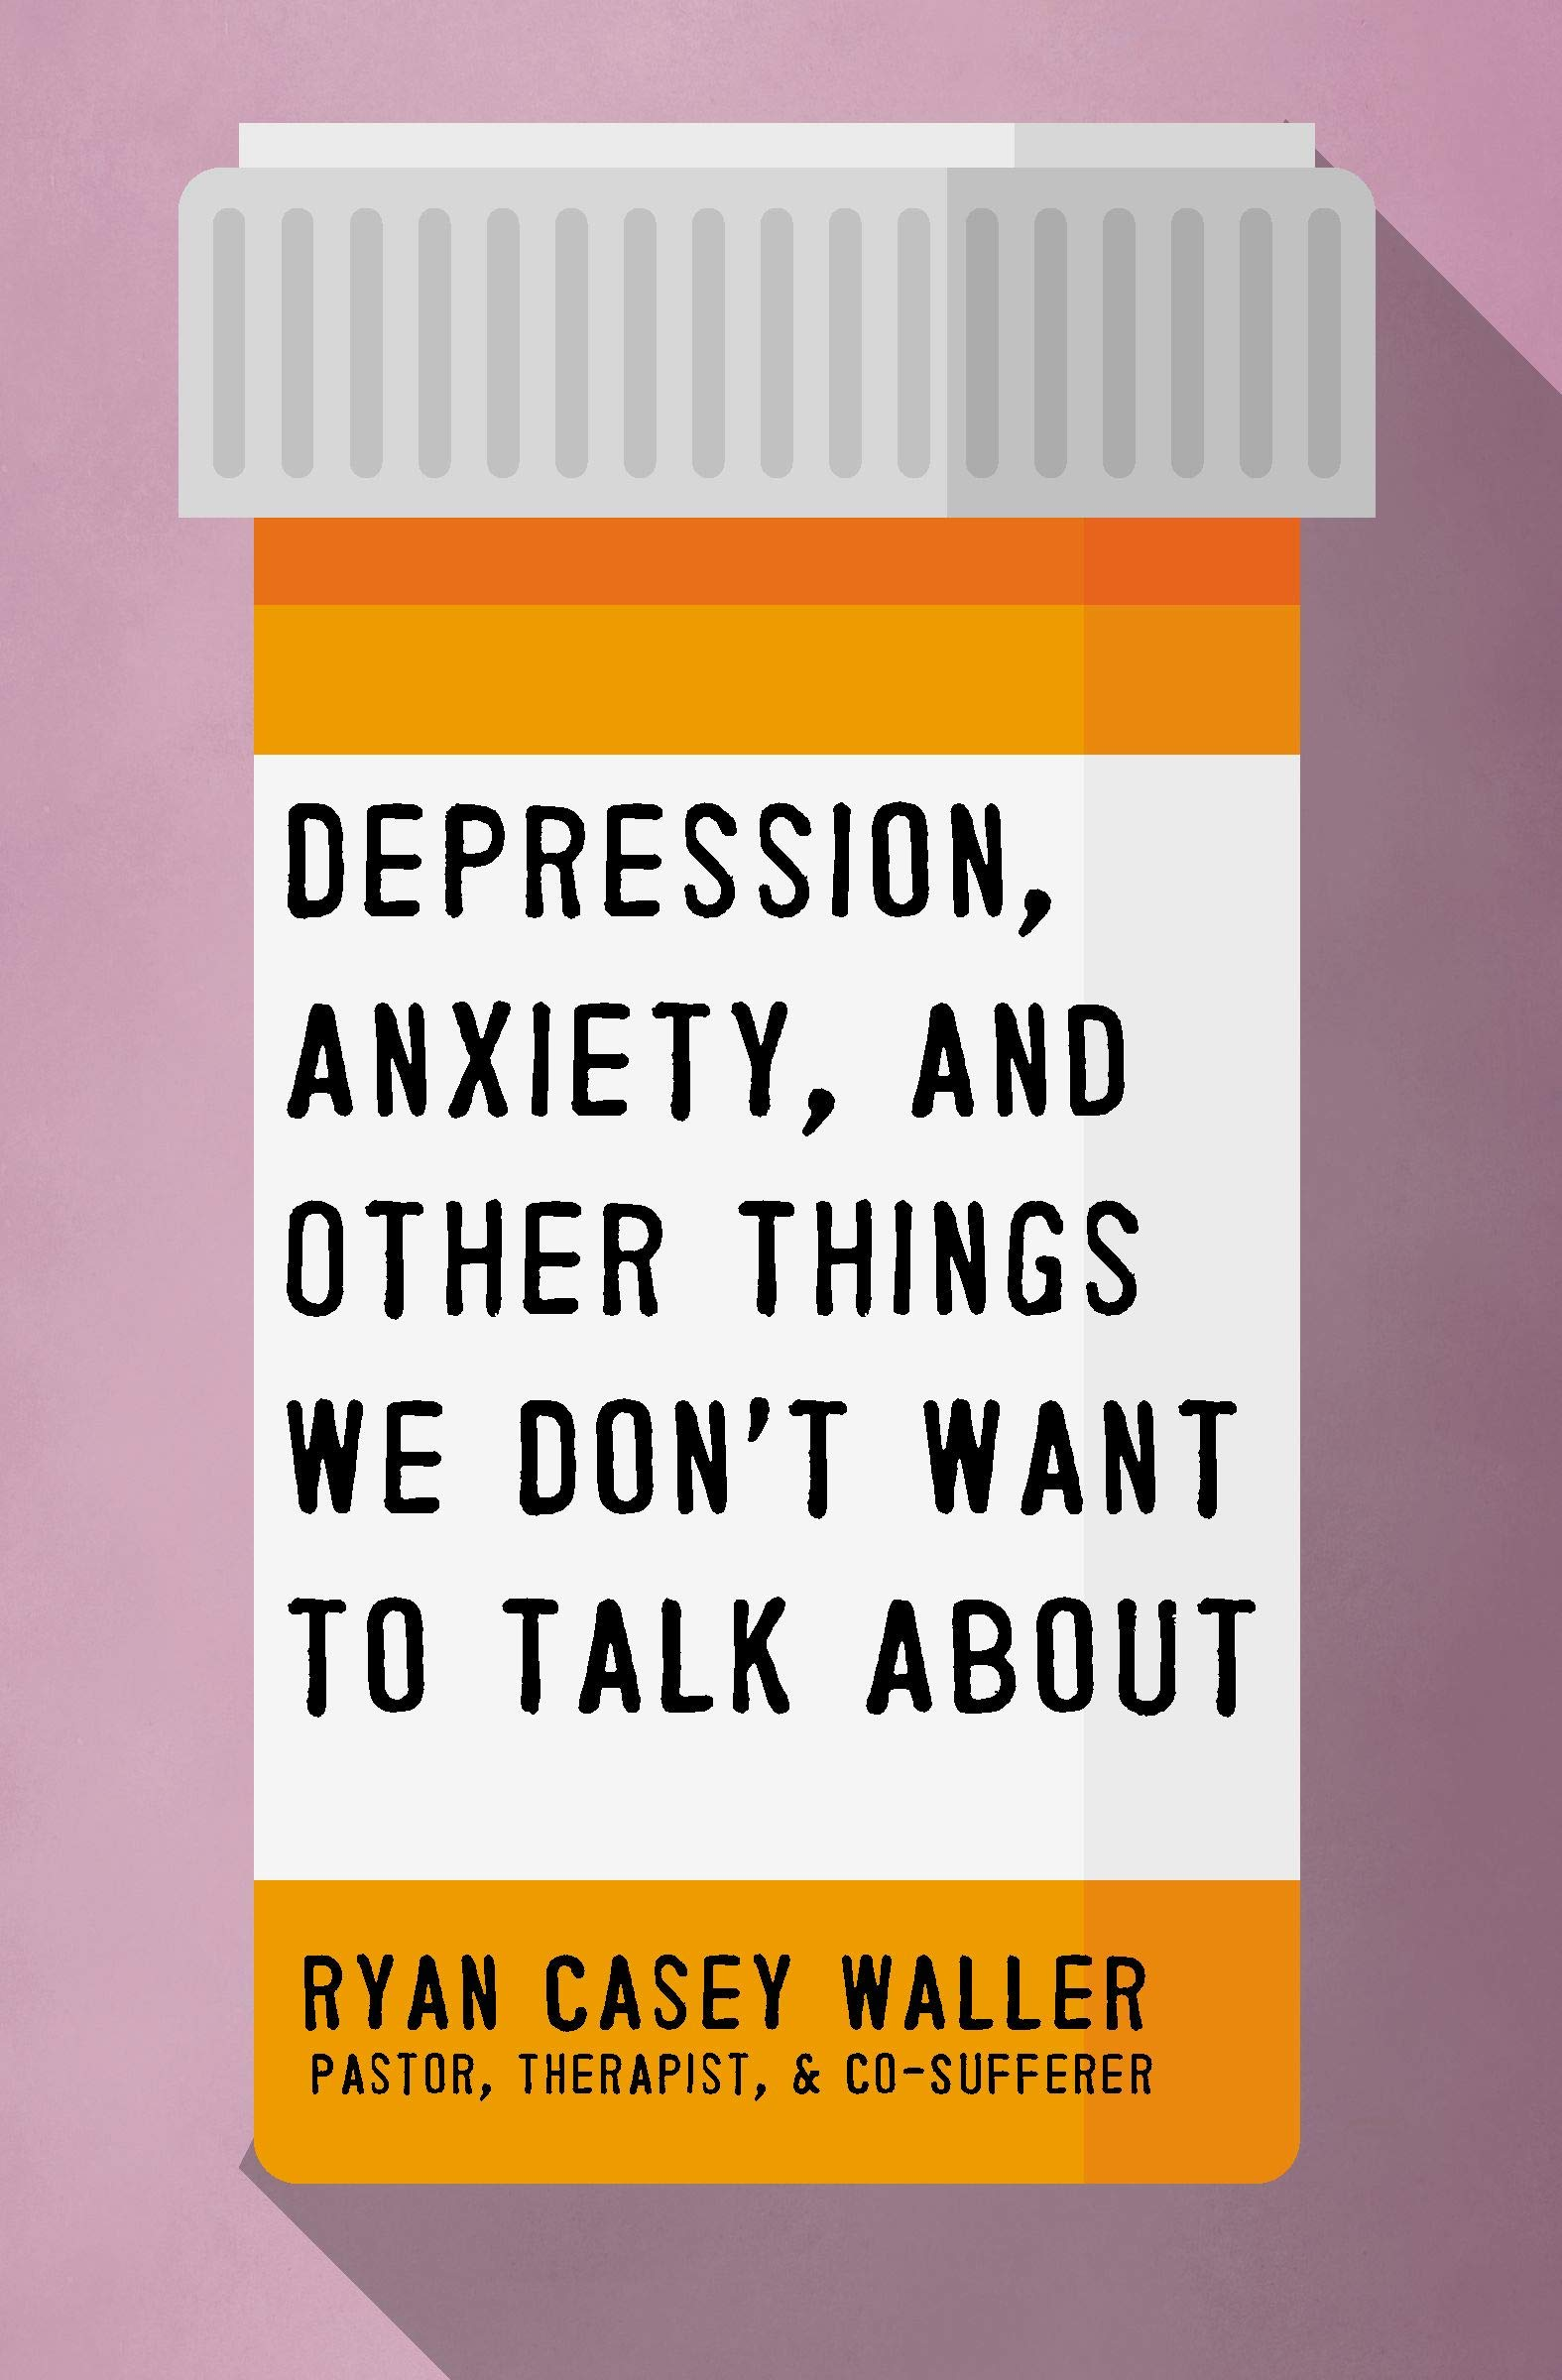 Depression, Anxiety, and other things we don't want to talk about